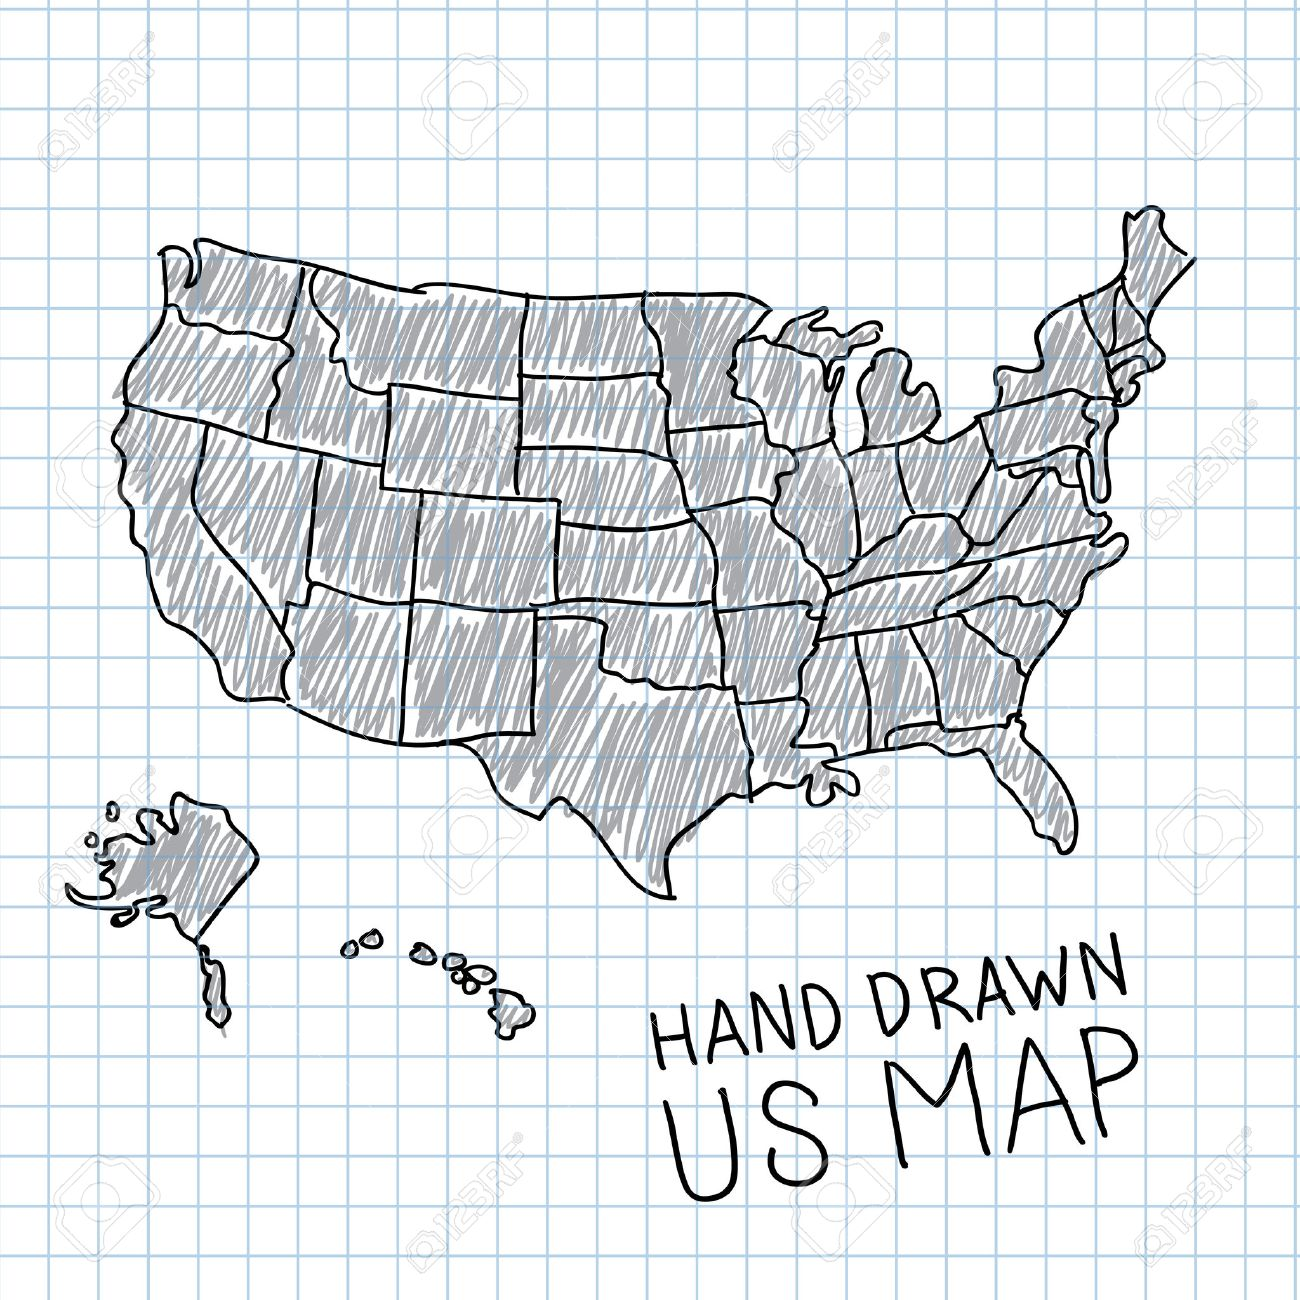 Hand Drawn Us Map.Hand Drawn Us Map Vector Illustration Royalty Free Cliparts Vectors